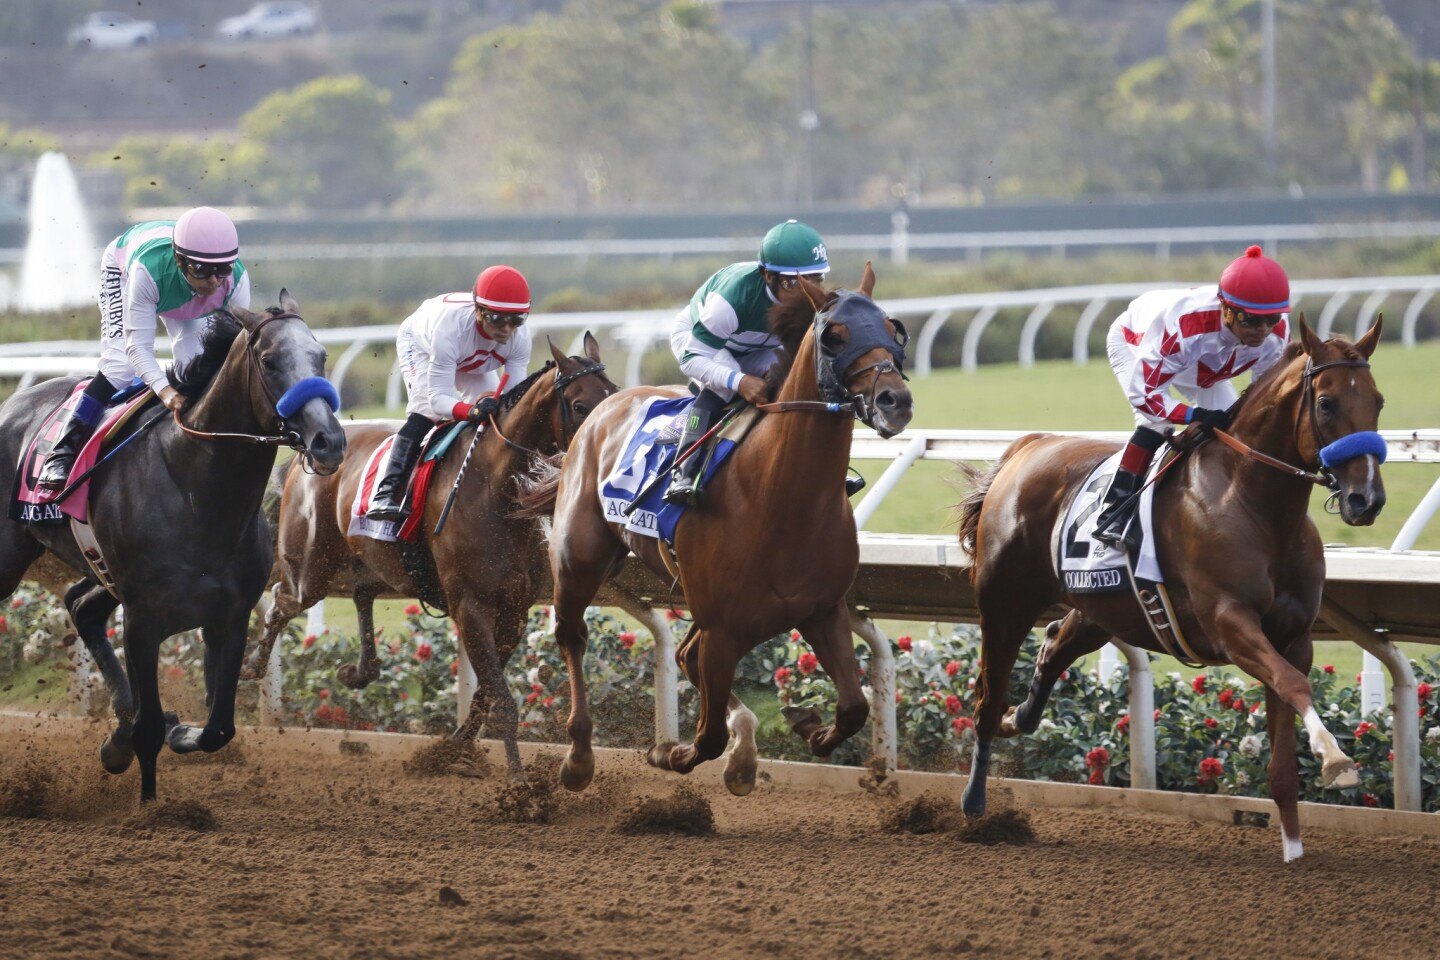 Pacific Classic: Race to the finish